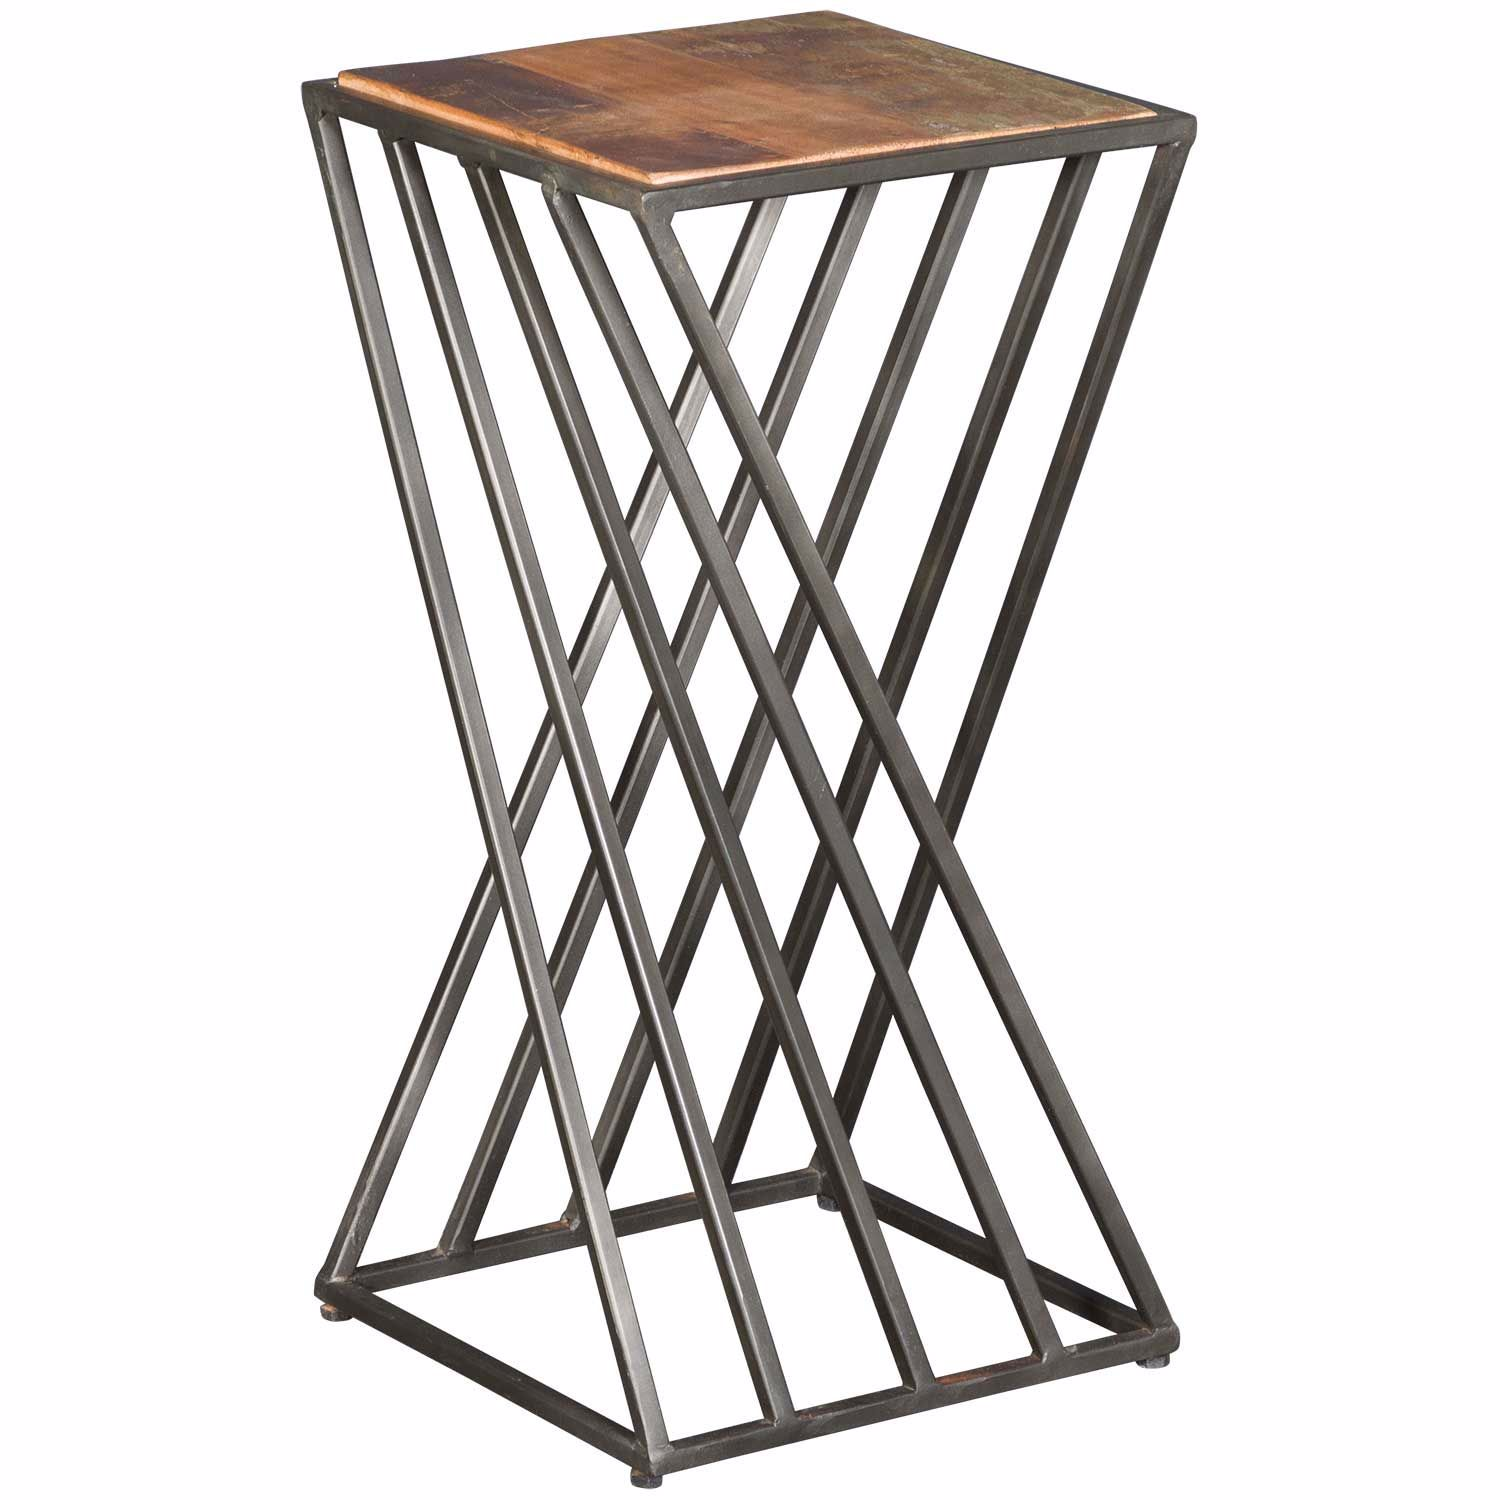 Picture of Vintage Industrial Accent Table